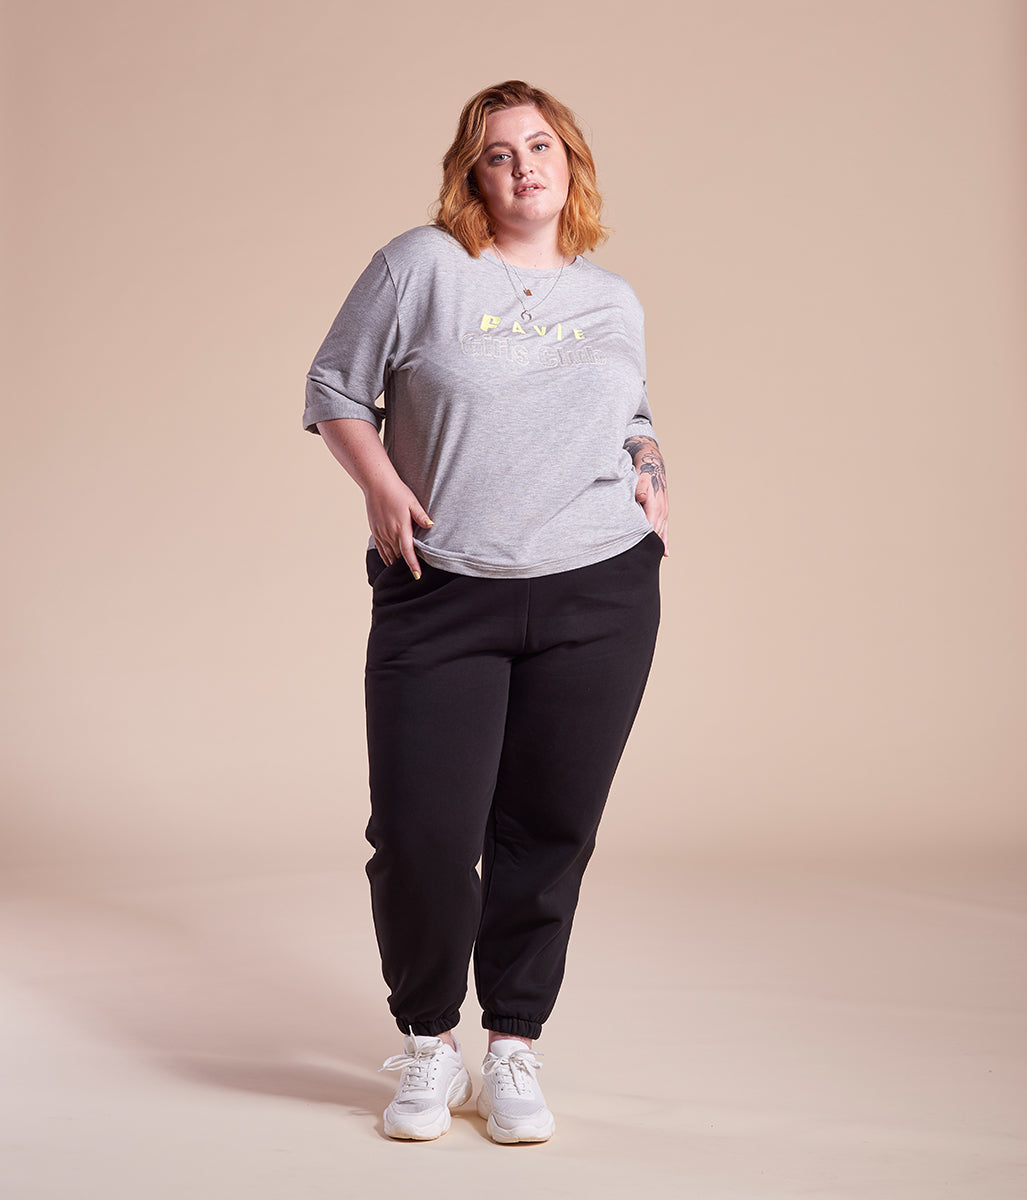 Laden Sie das Bild in den Galerie-Viewer, Favie Curvy Fashion T-Shirt längere Ärmel Favie Girls Club grau Plus Size Vorderansicht